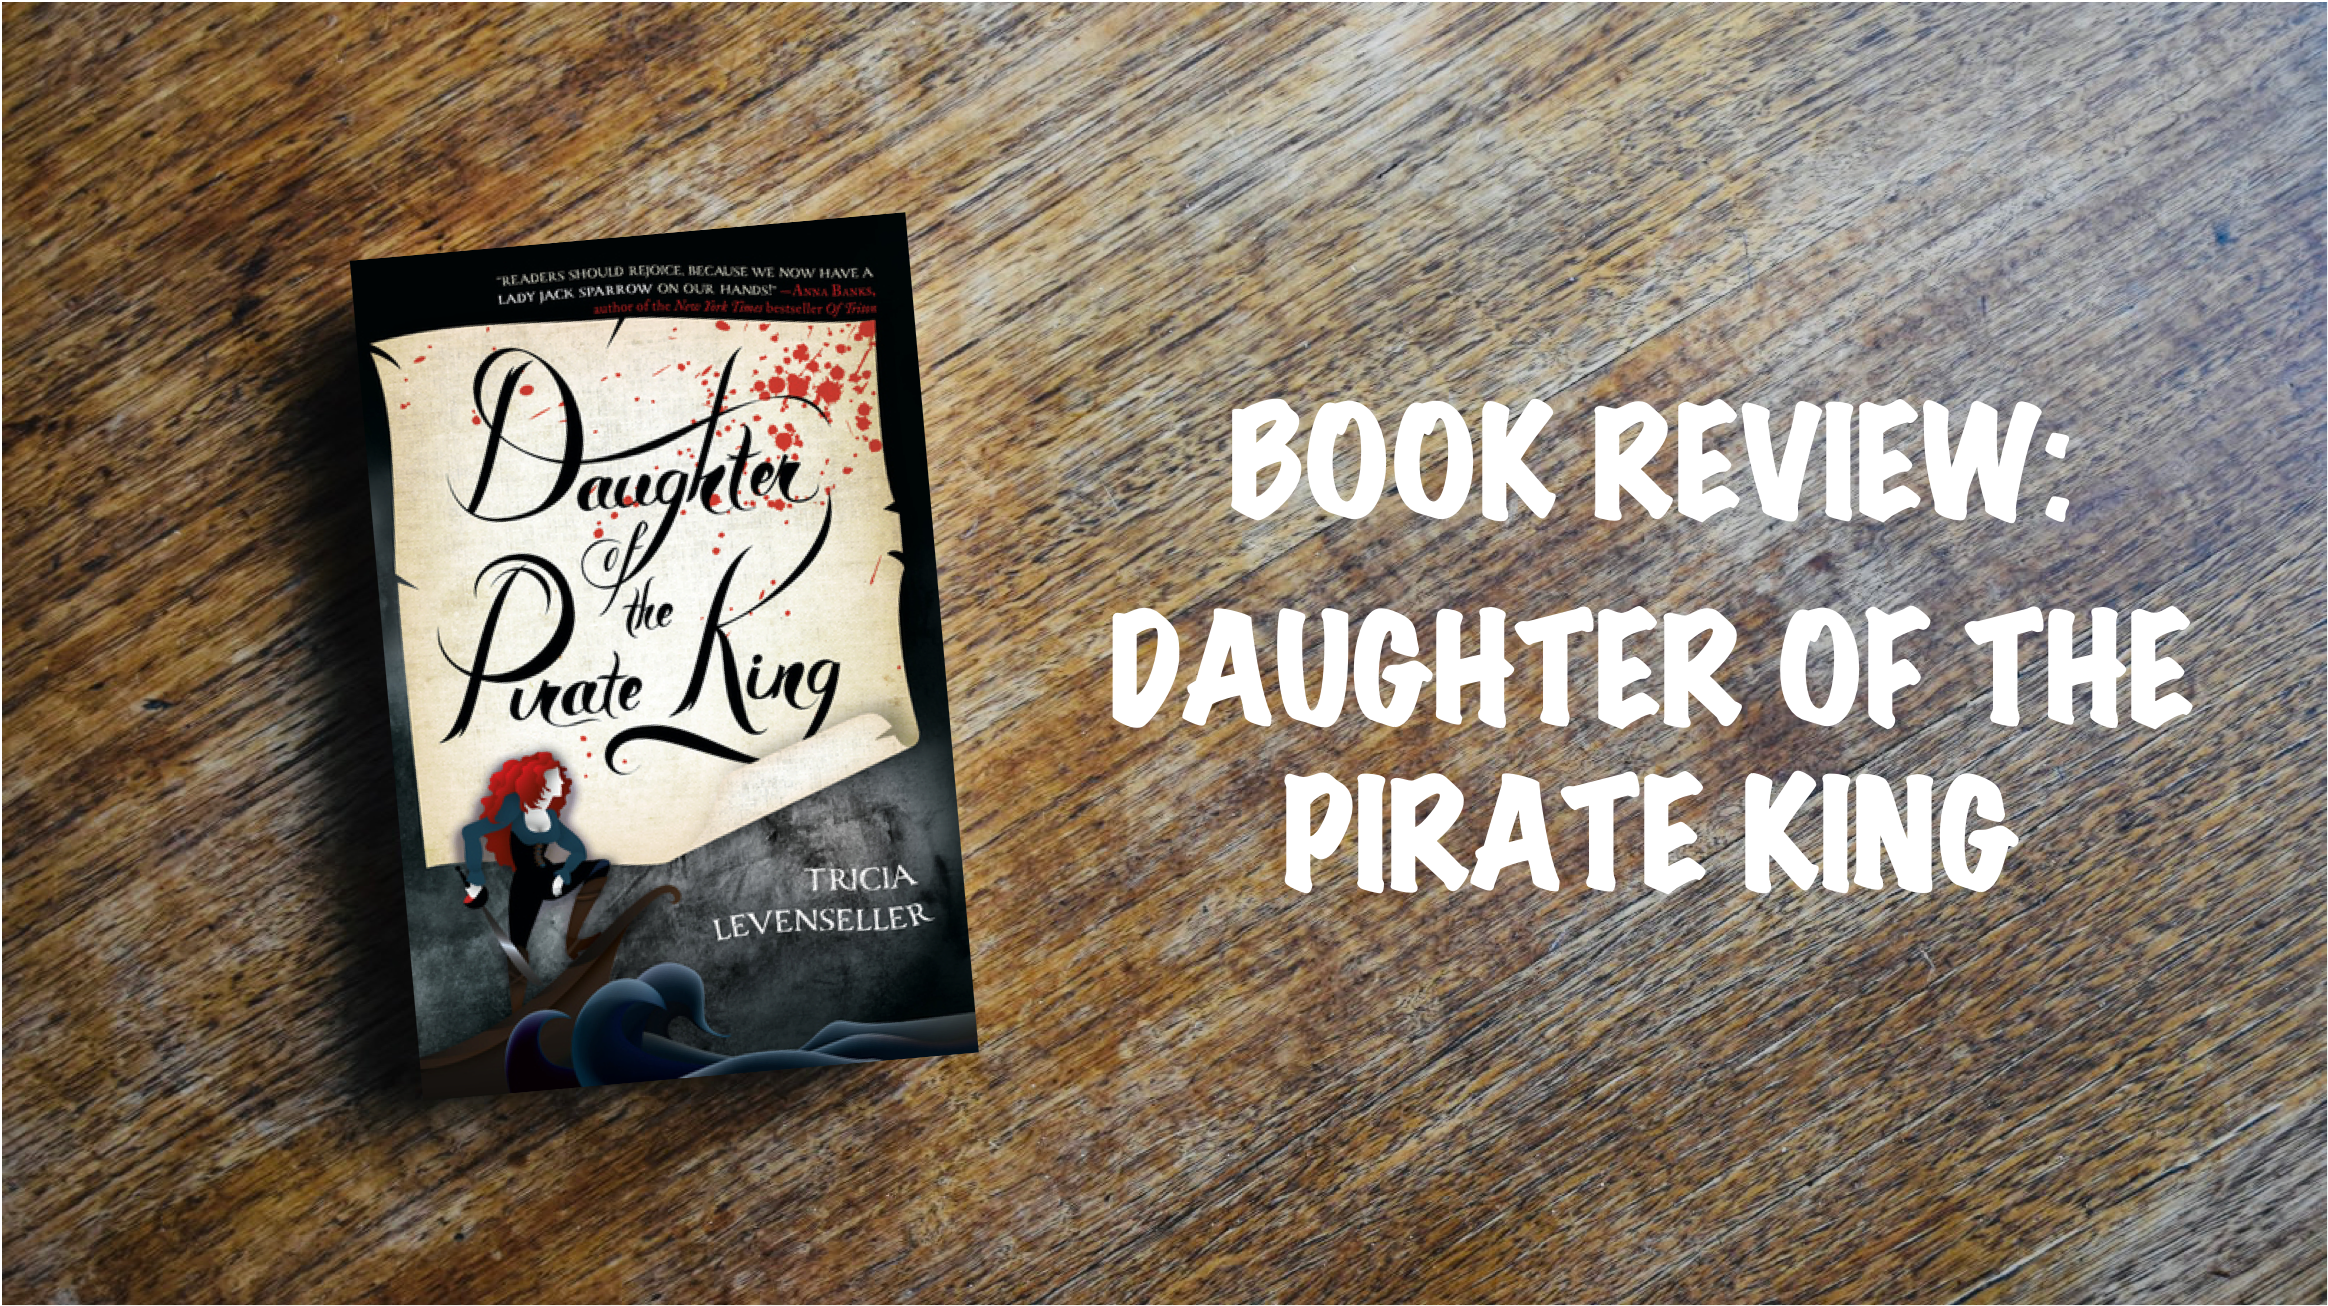 Book review banner: Daughter of the Pirate King